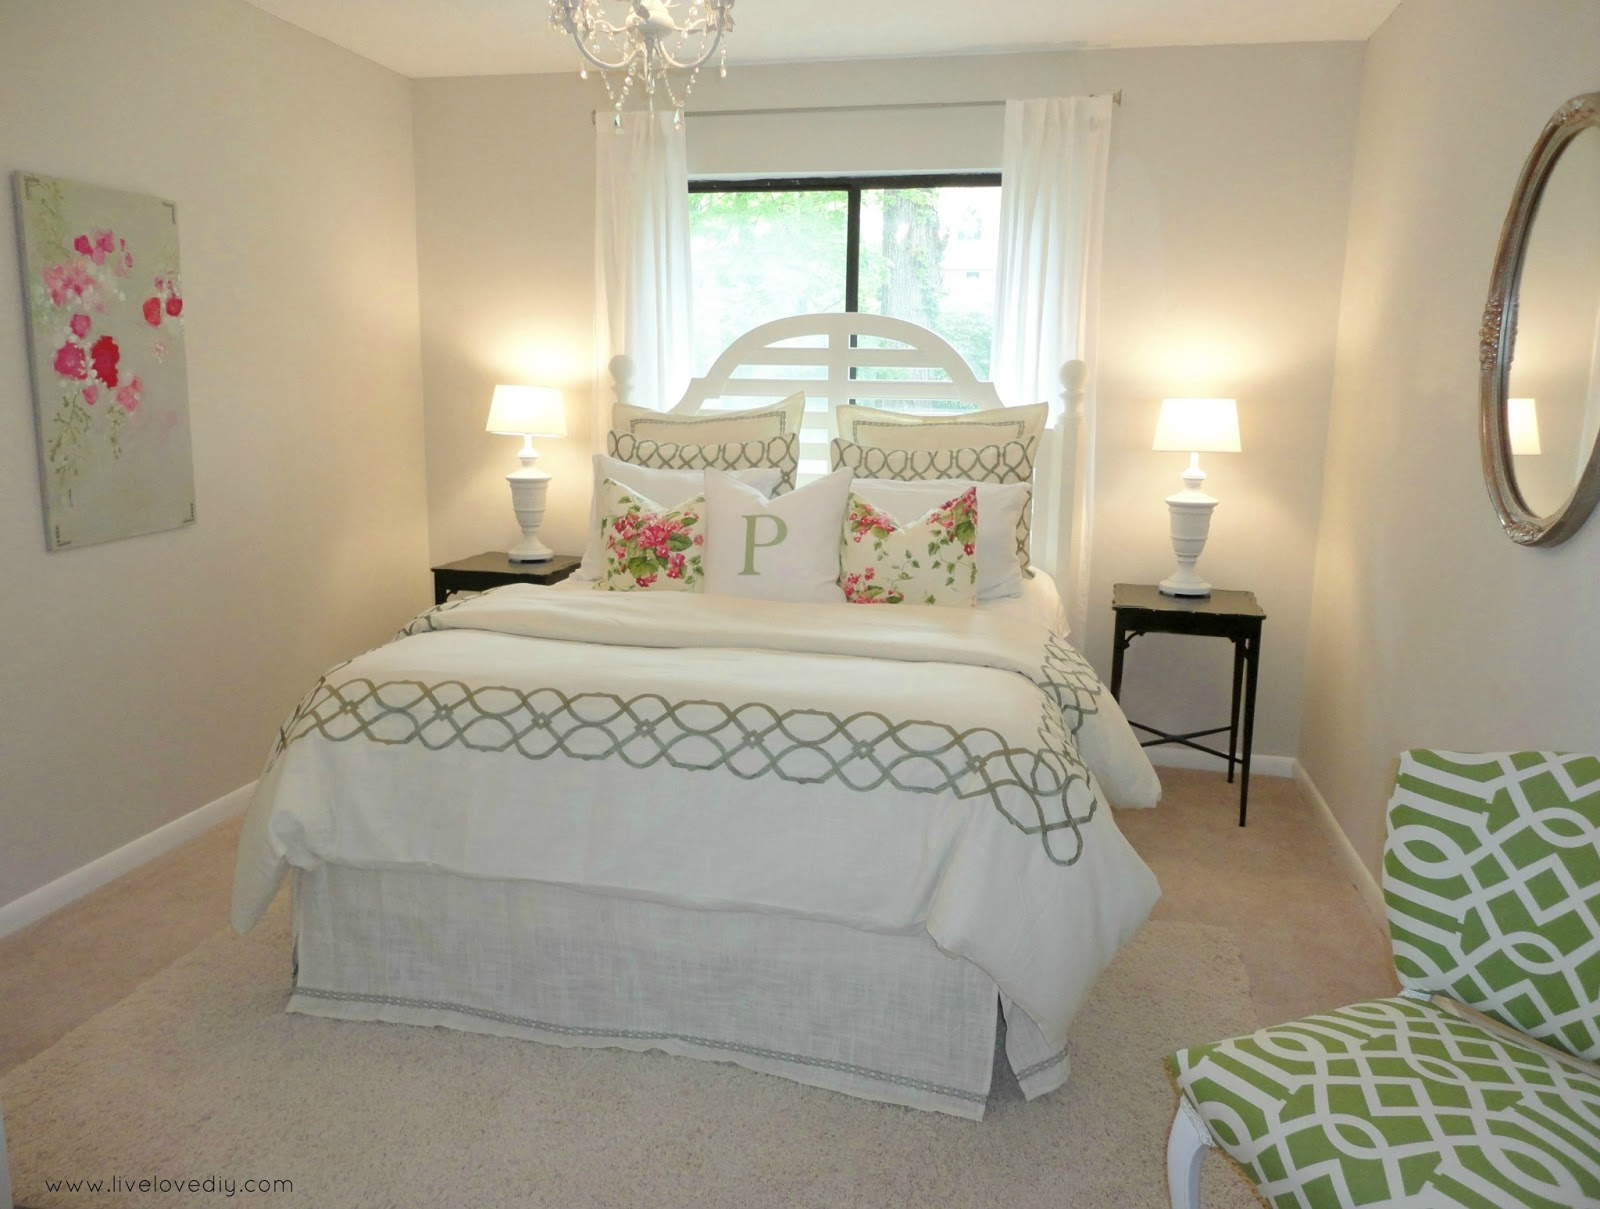 LiveLoveDIY: Decorating Bedrooms with Secondhand Finds: The Guest ...